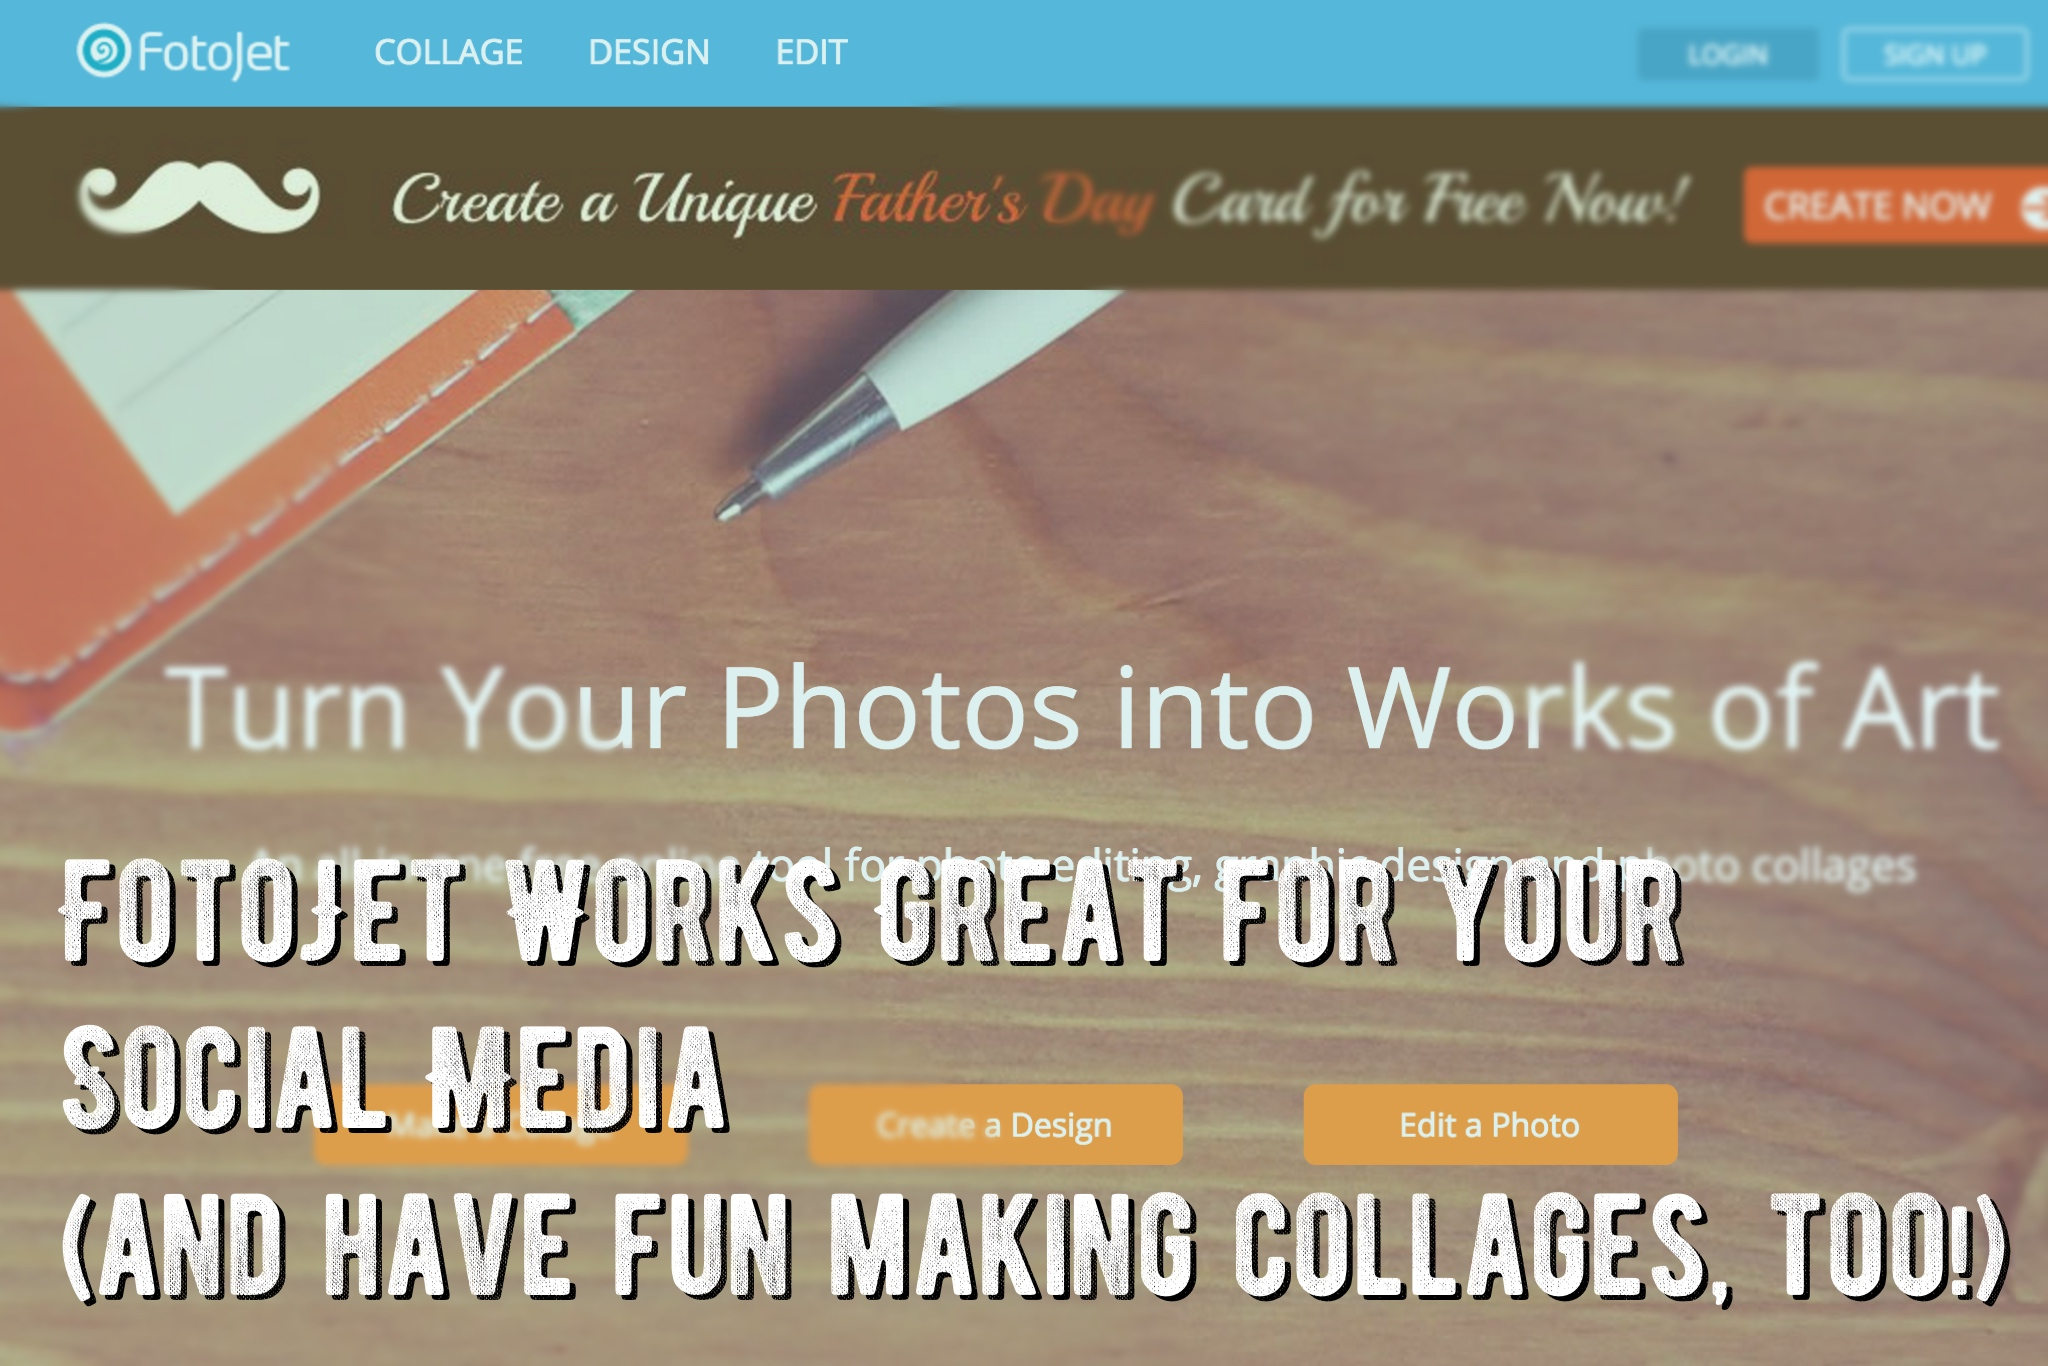 FotoJet Works Great for your Social Media (and have fun making collages, too!)